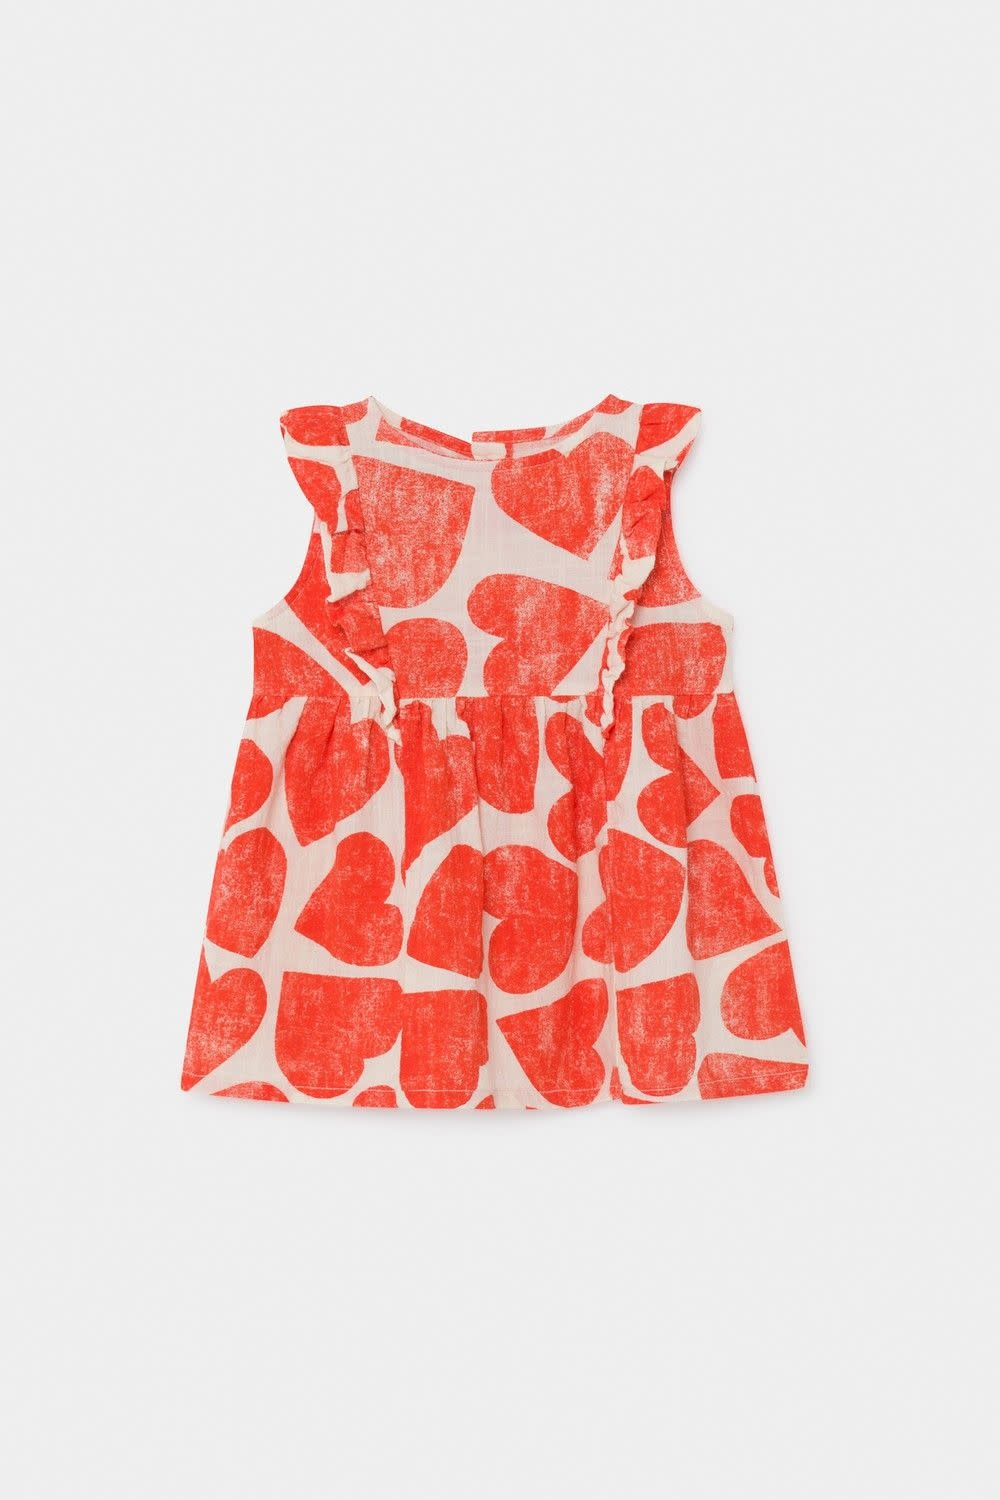 BOBO CHOSES All Over Hearts Ruffle Dress